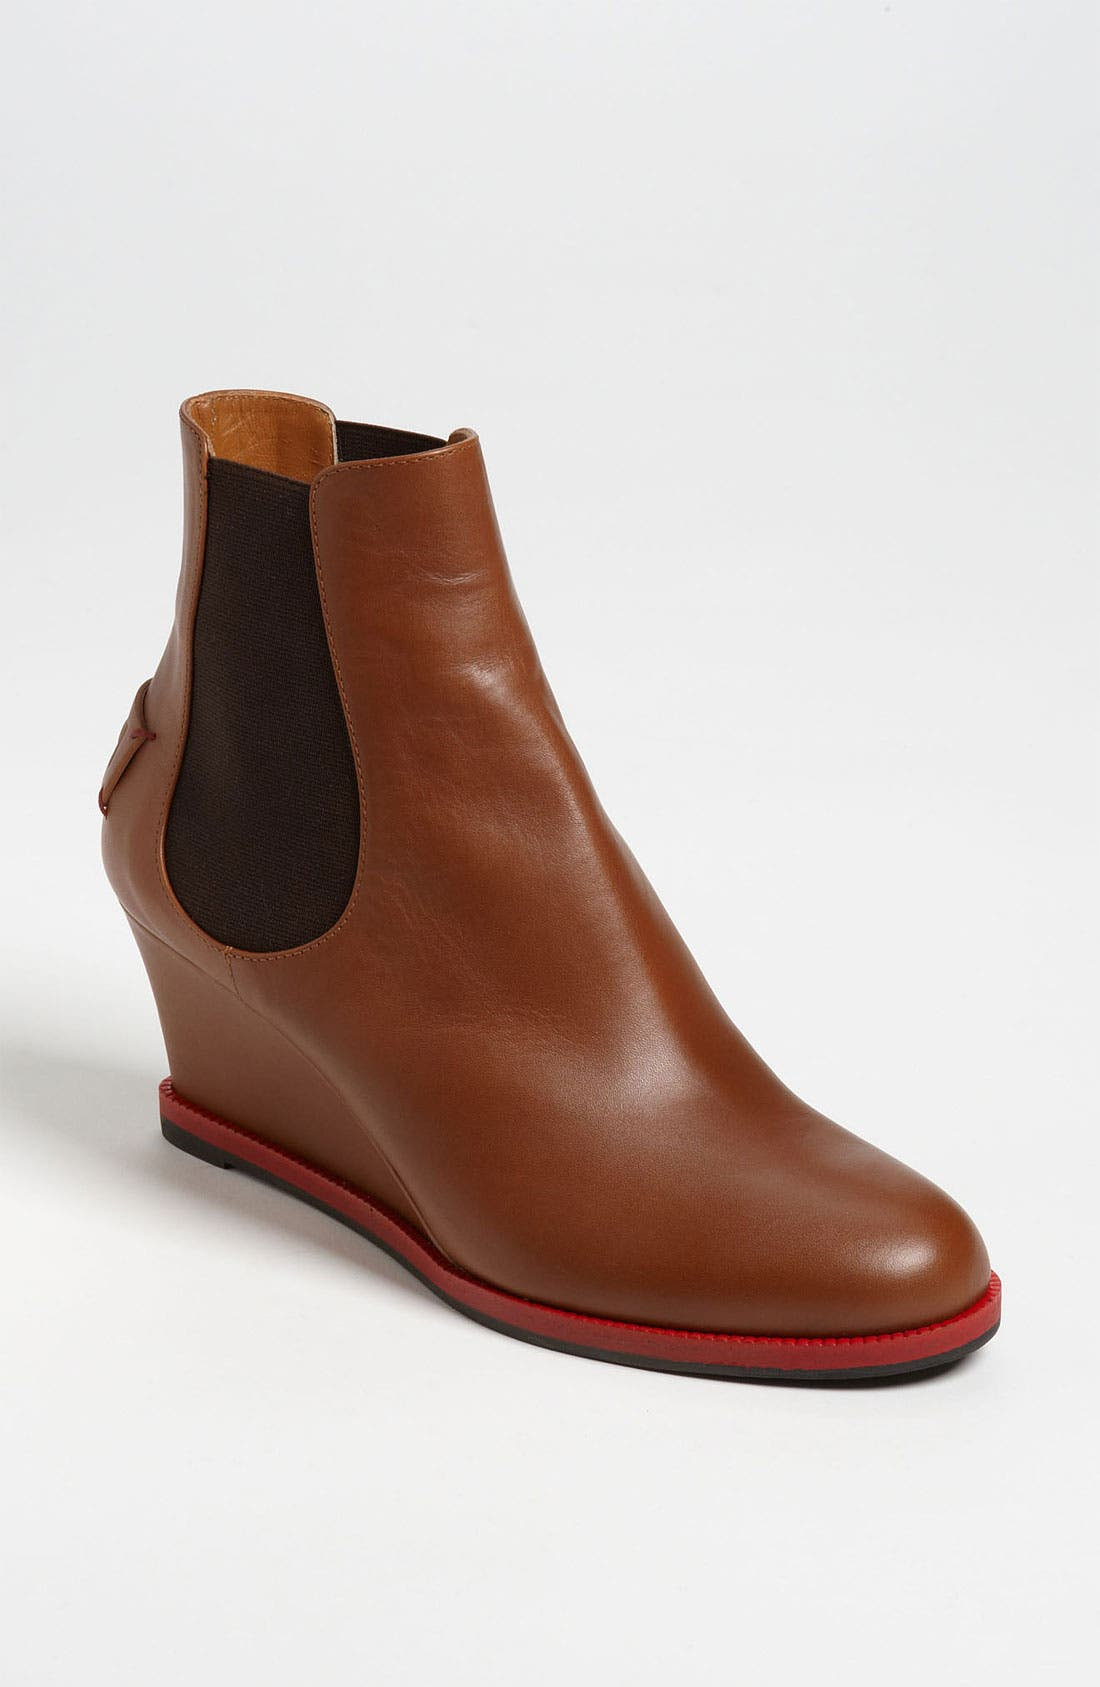 Alternate Image 1 Selected - Fendi Gored Wedge Ankle Boot